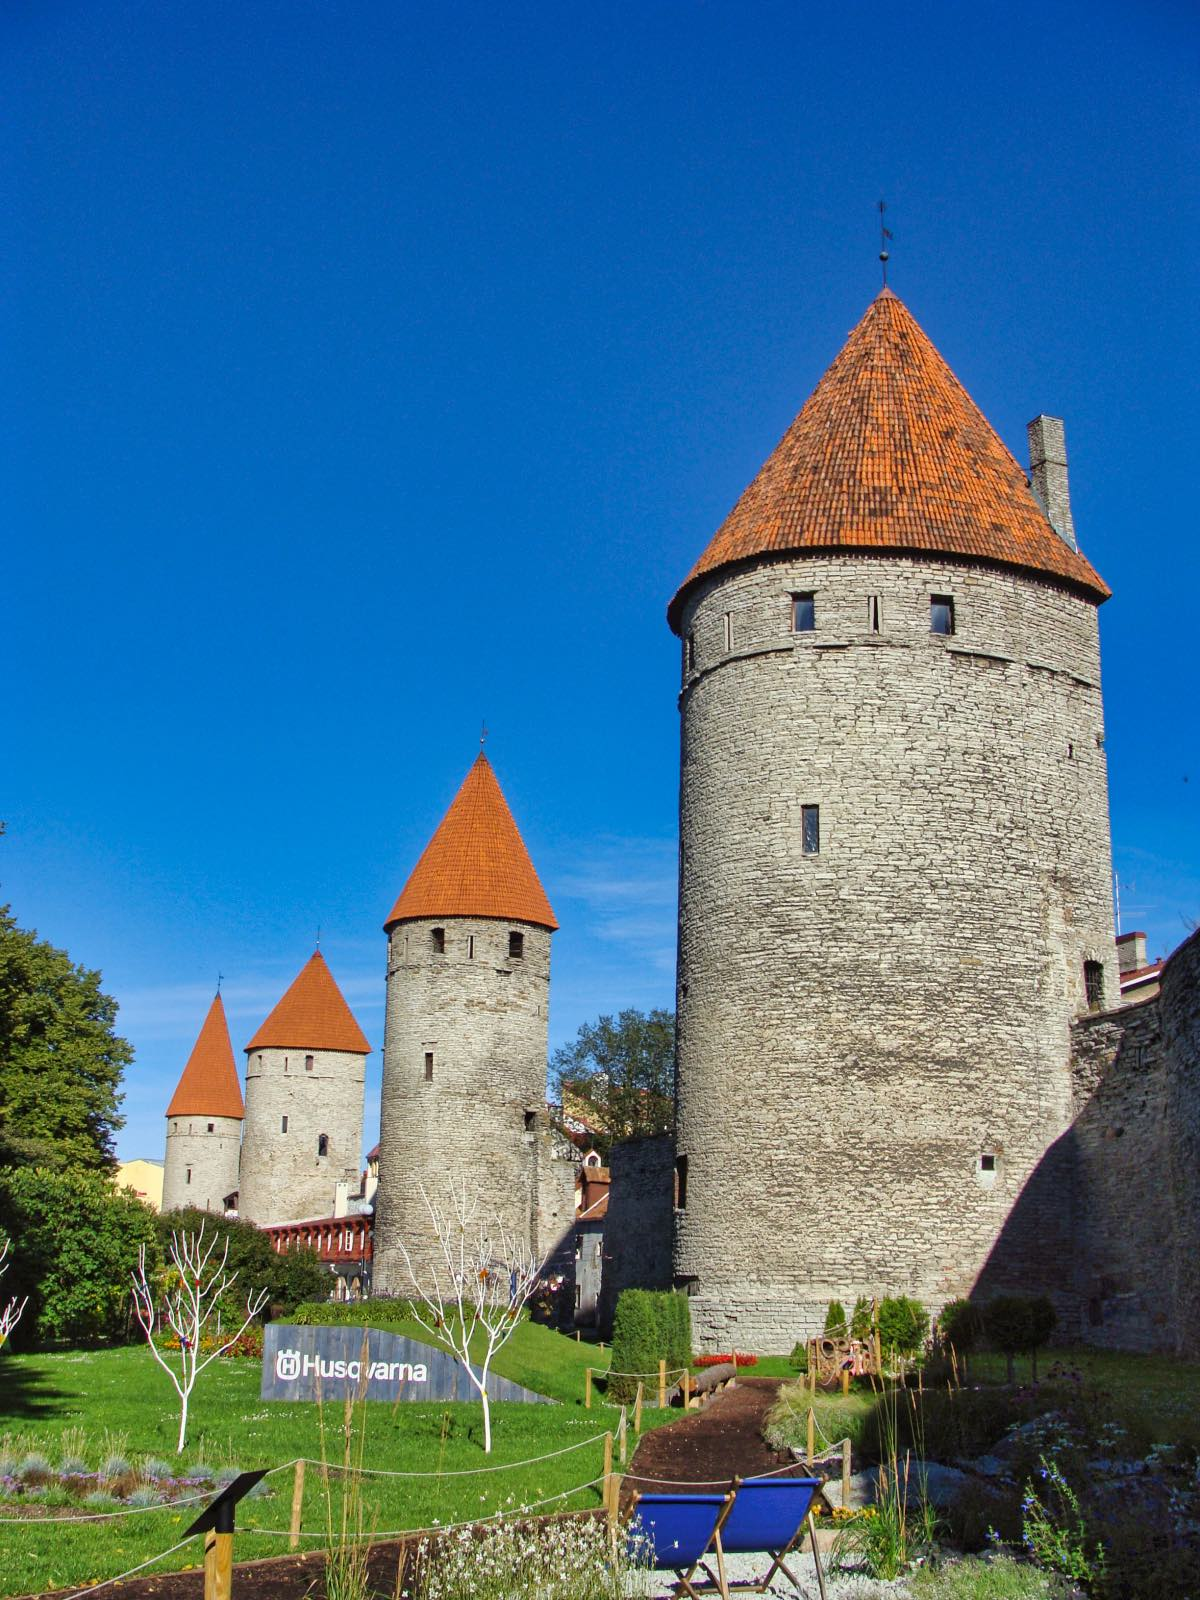 Tallinn Sights Square of Towers